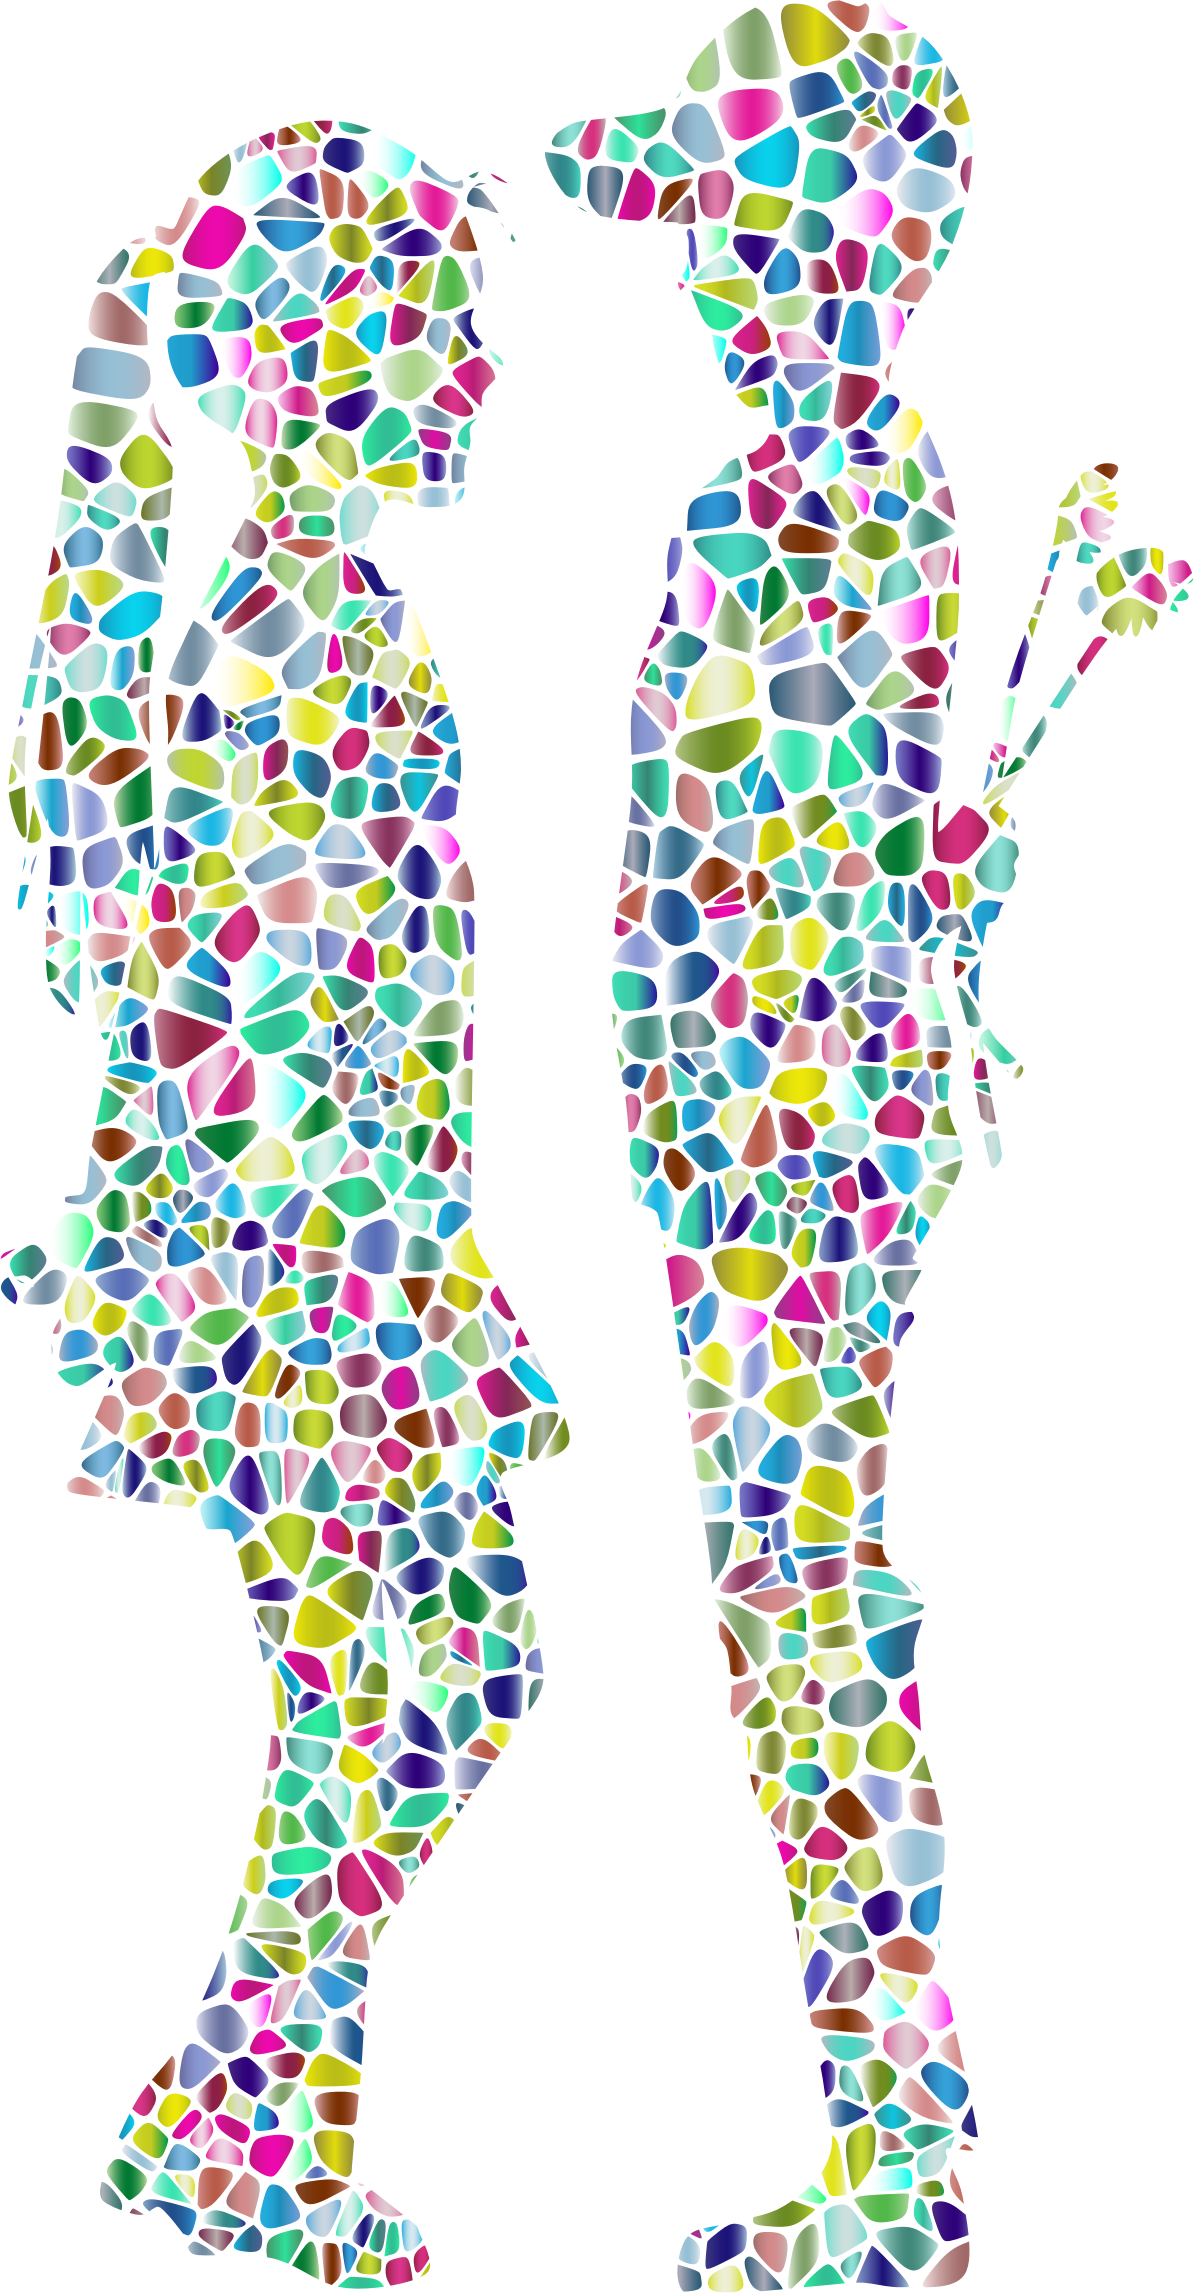 Polyprismatic Tiled Boy Giving Flowers To Girl Silhouette by GDJ